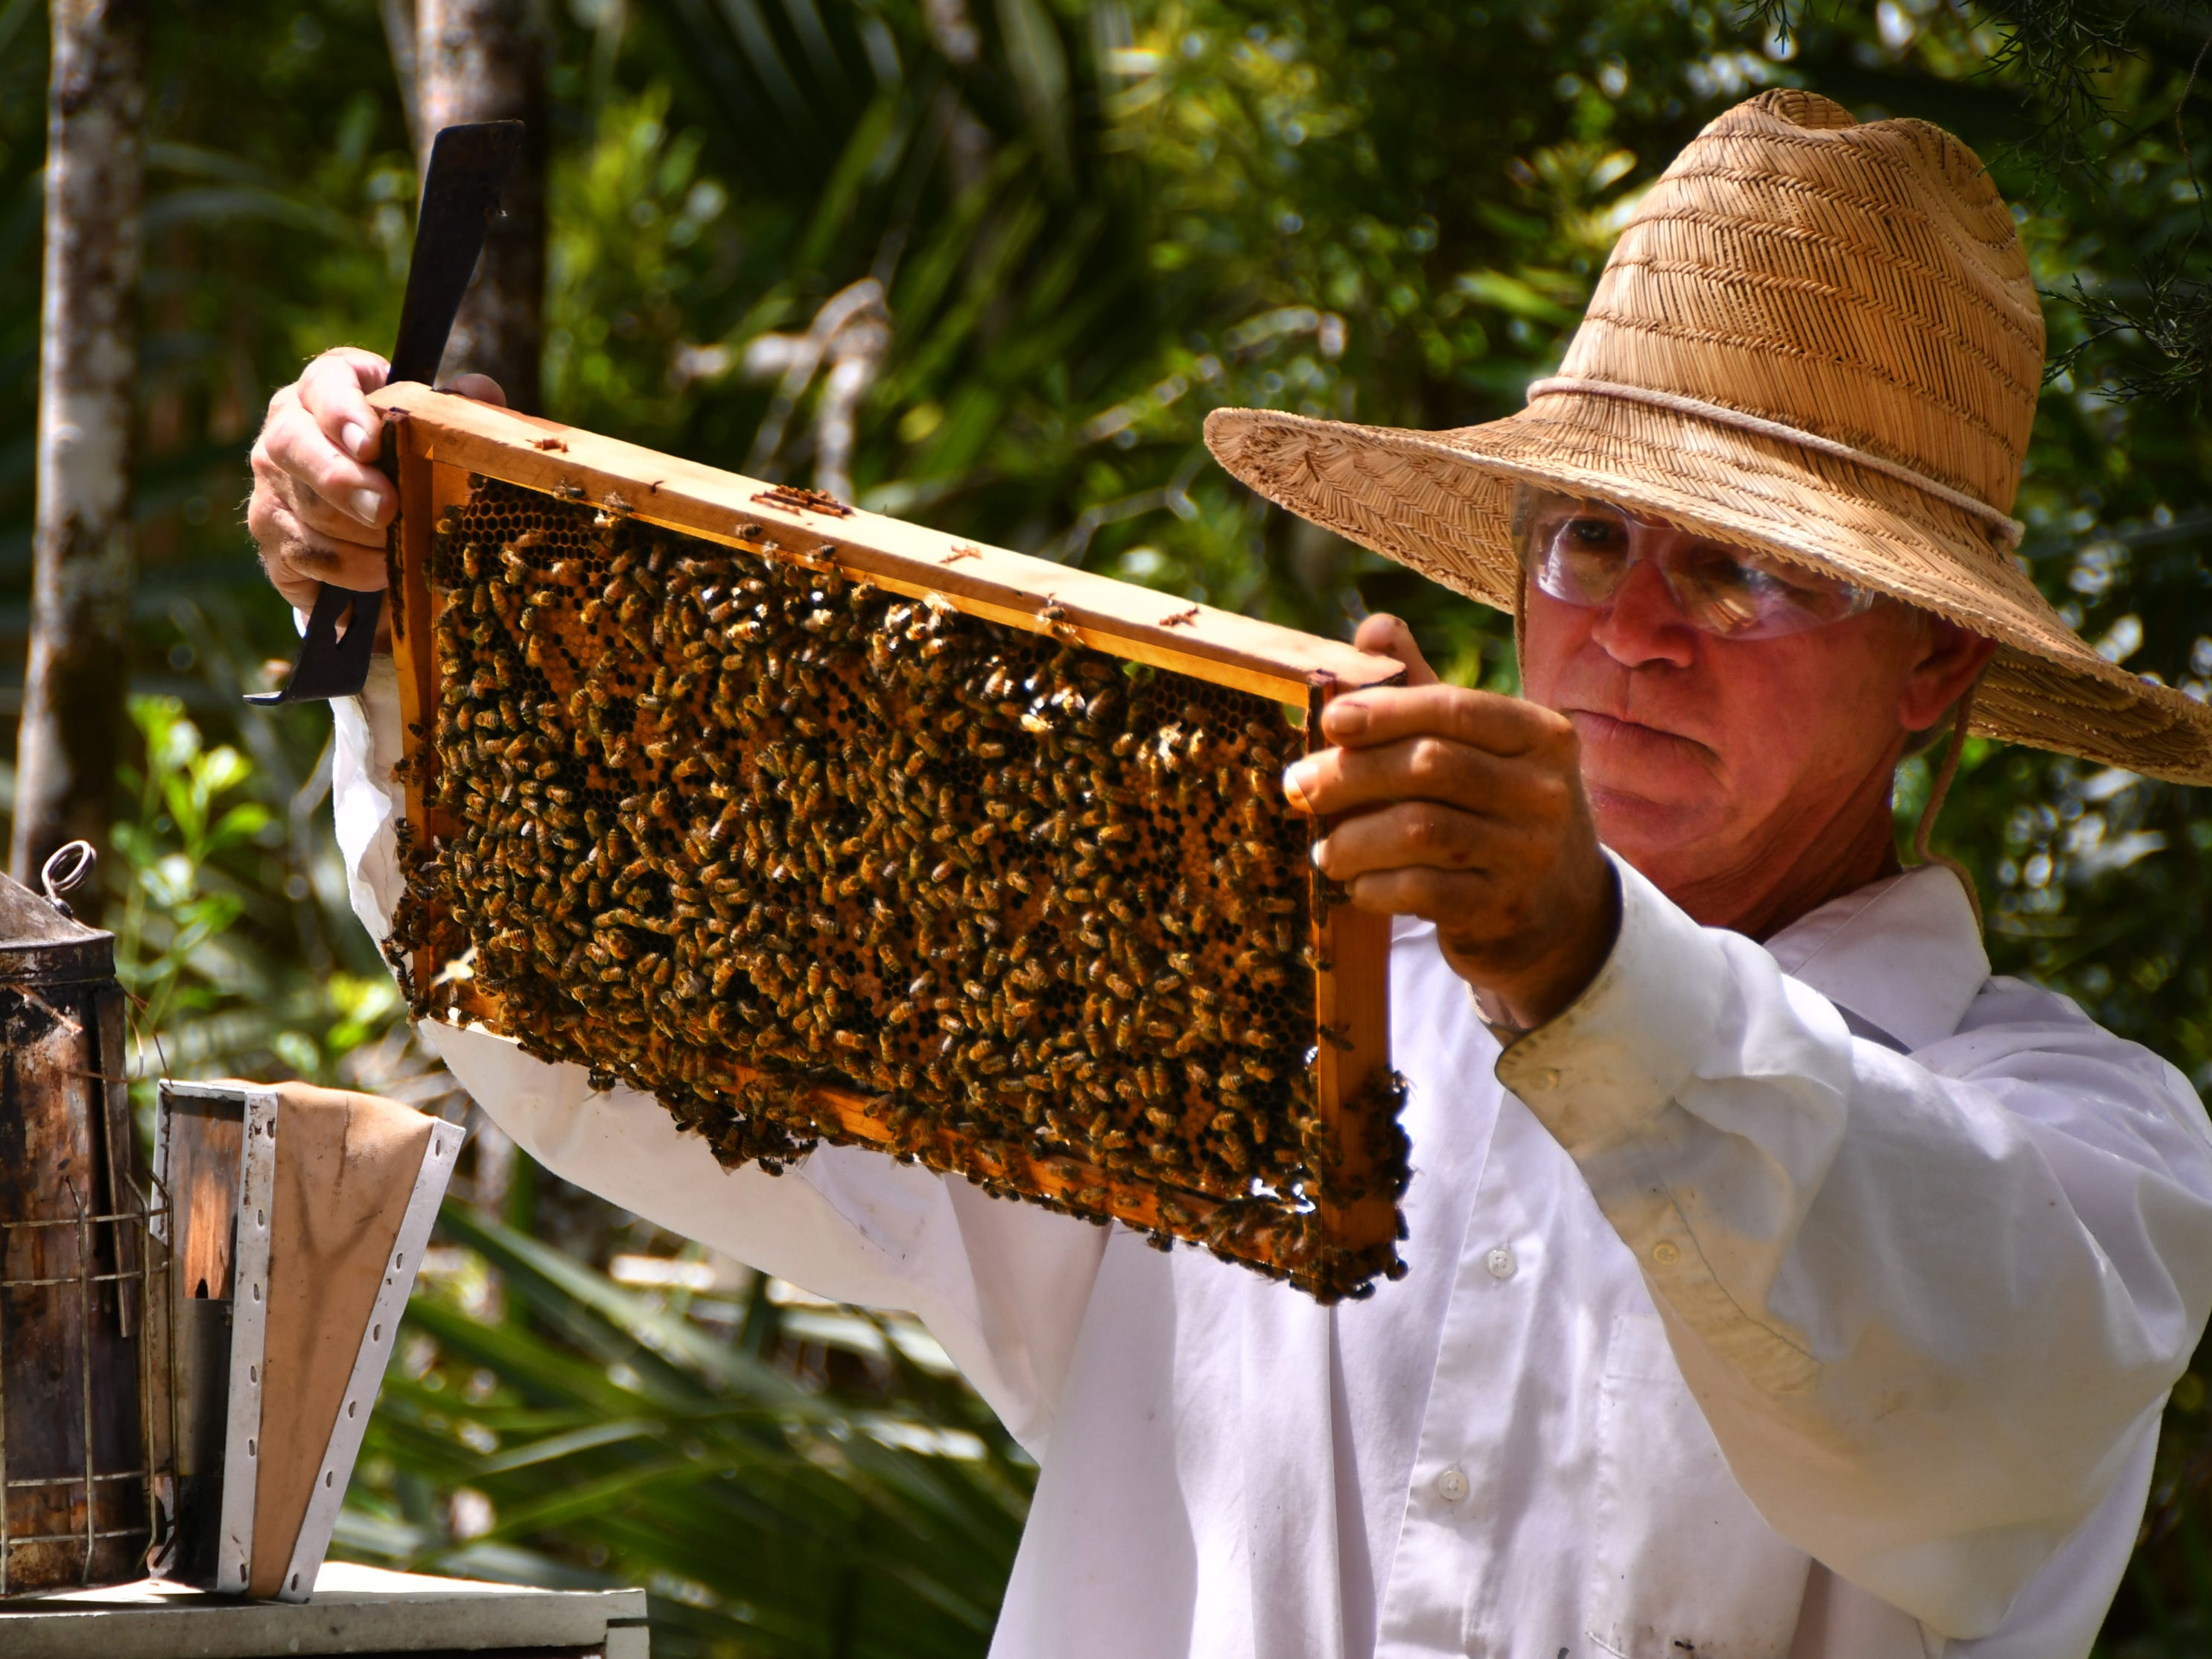 Bee crisis: Pollinators endure countless threats in Florida. And we need them to live